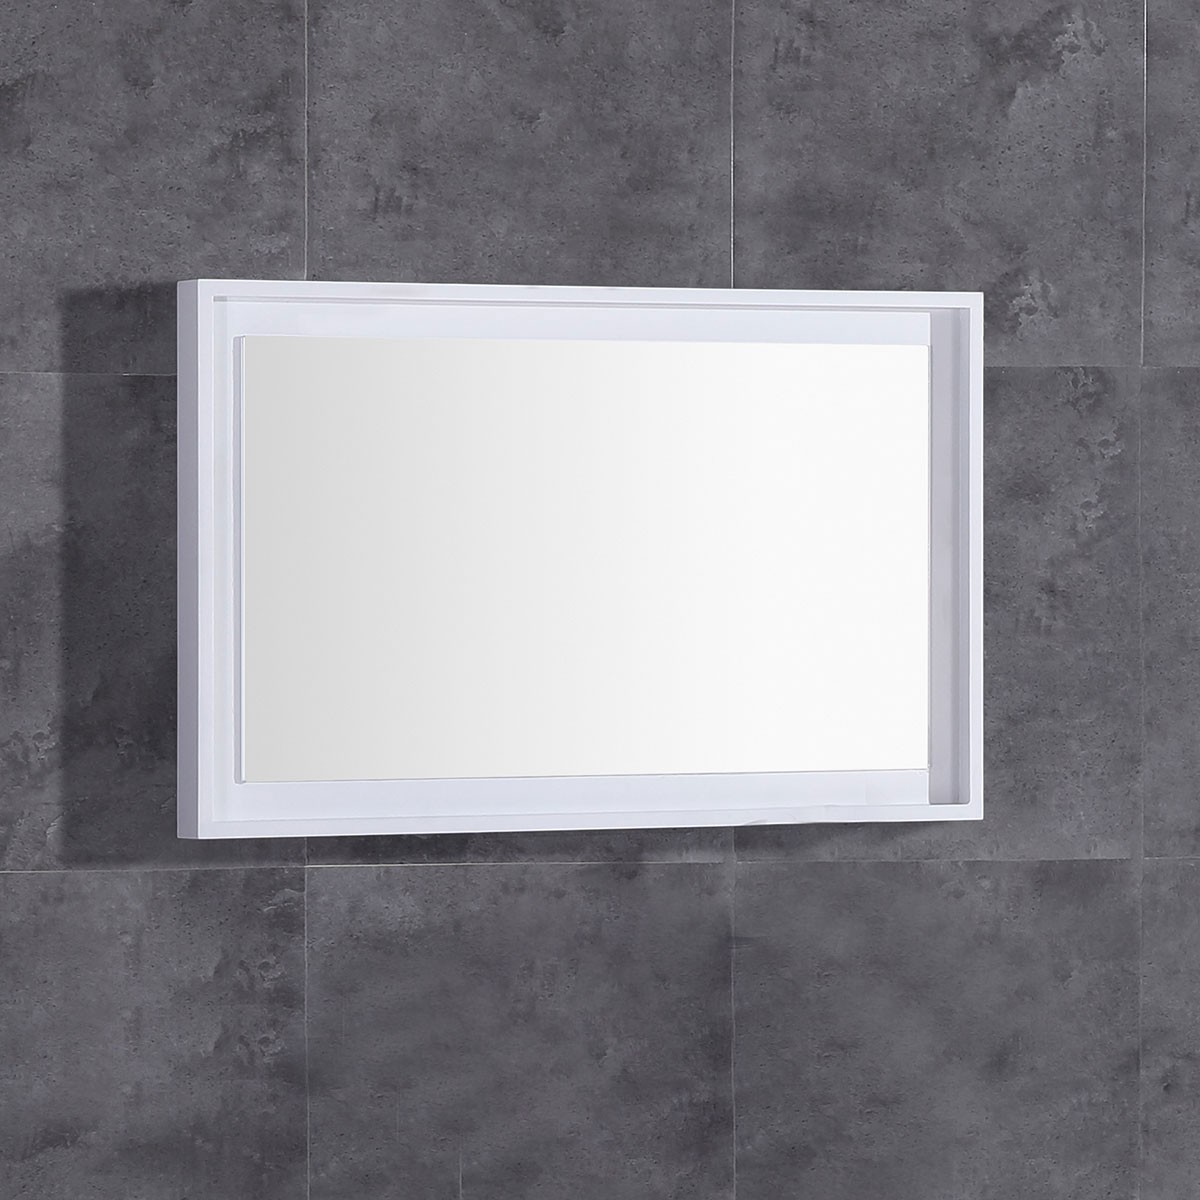 32 x 20 In. Mirror with  Frame (DK-TH22119-M)